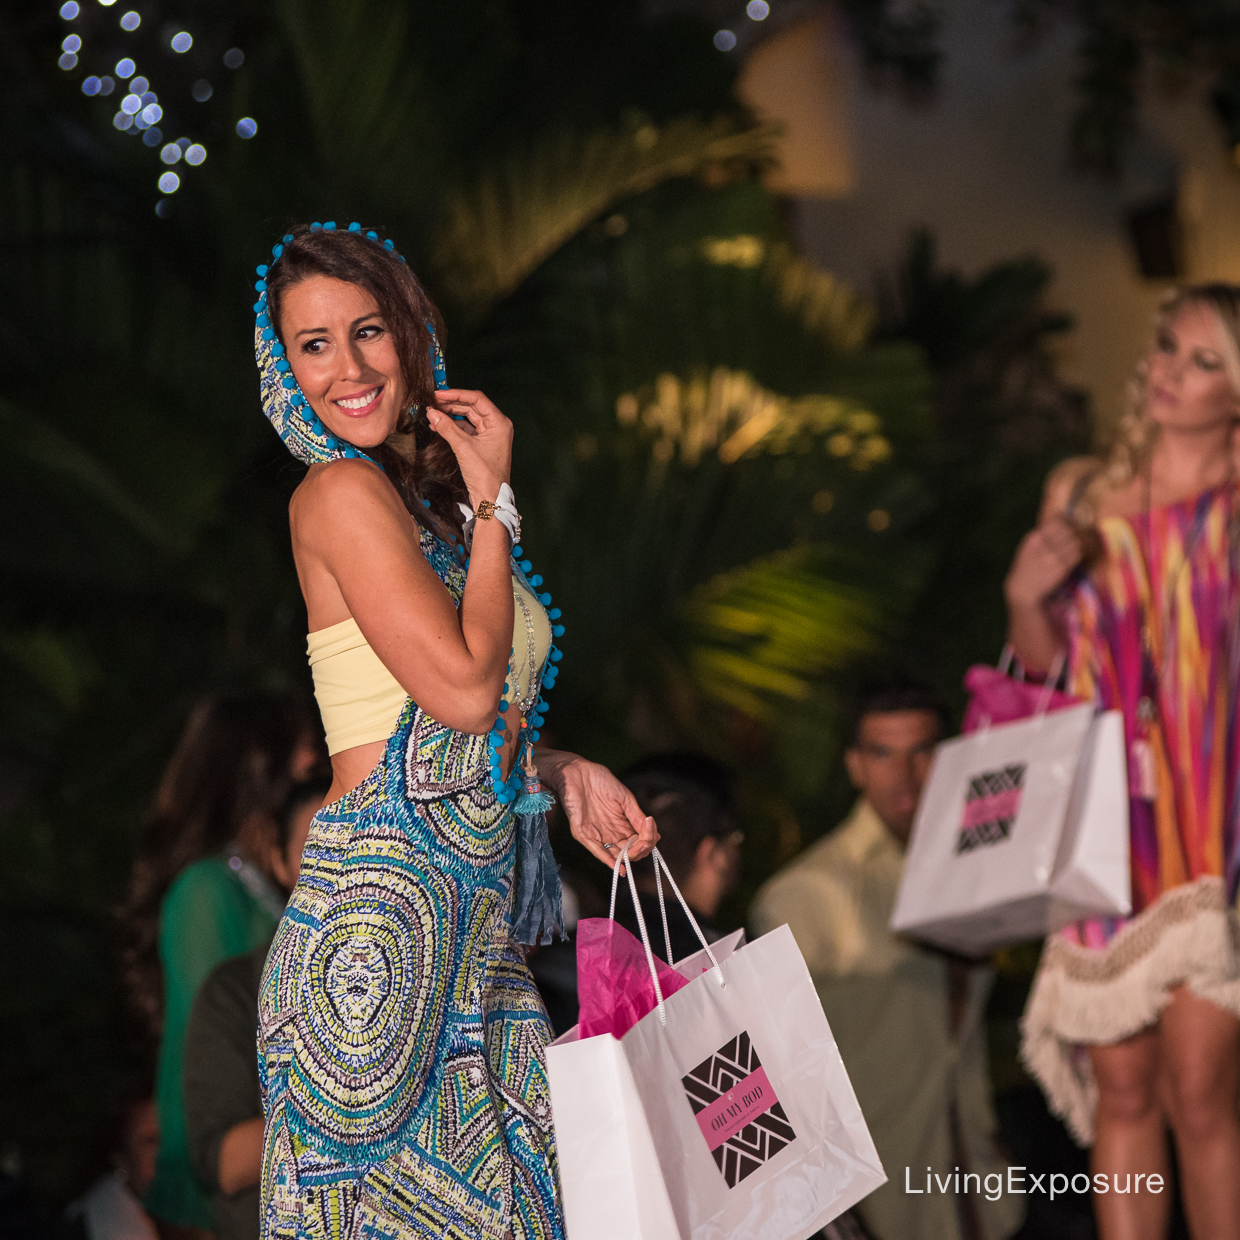 delray-beach-fashion-week-2016-swim-surf-show-photography-living-exposure-dda-event-39.jpg